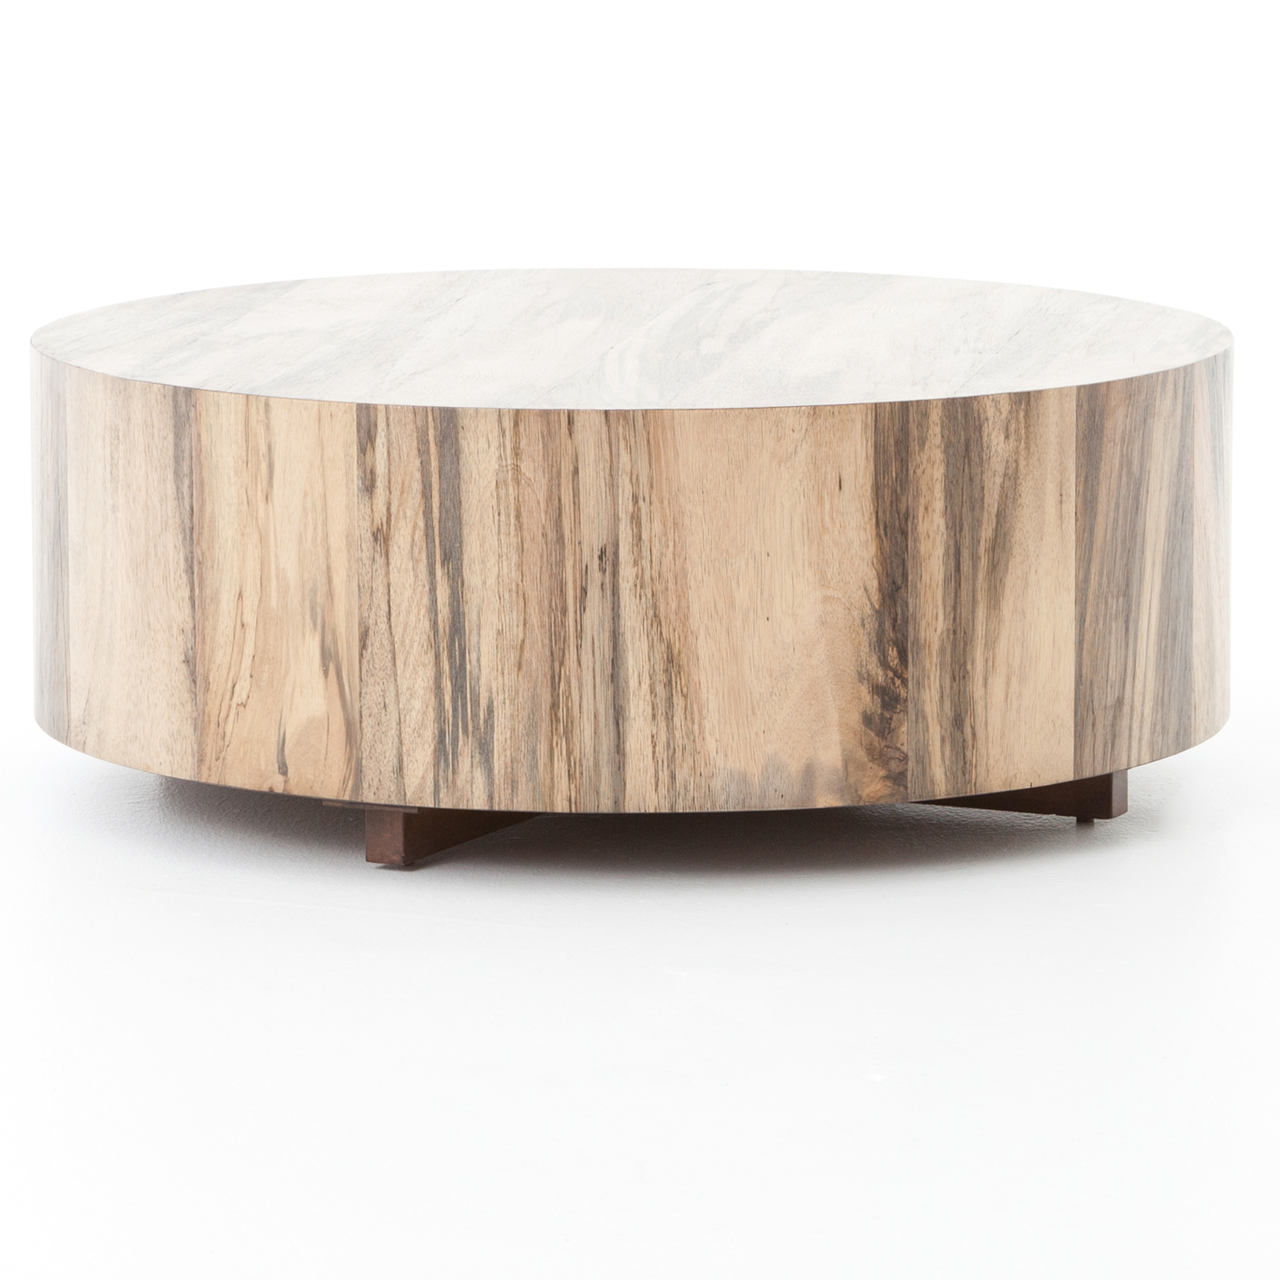 Hudson Spalted Rustic Wood Block Round Coffee Table | Zin Home